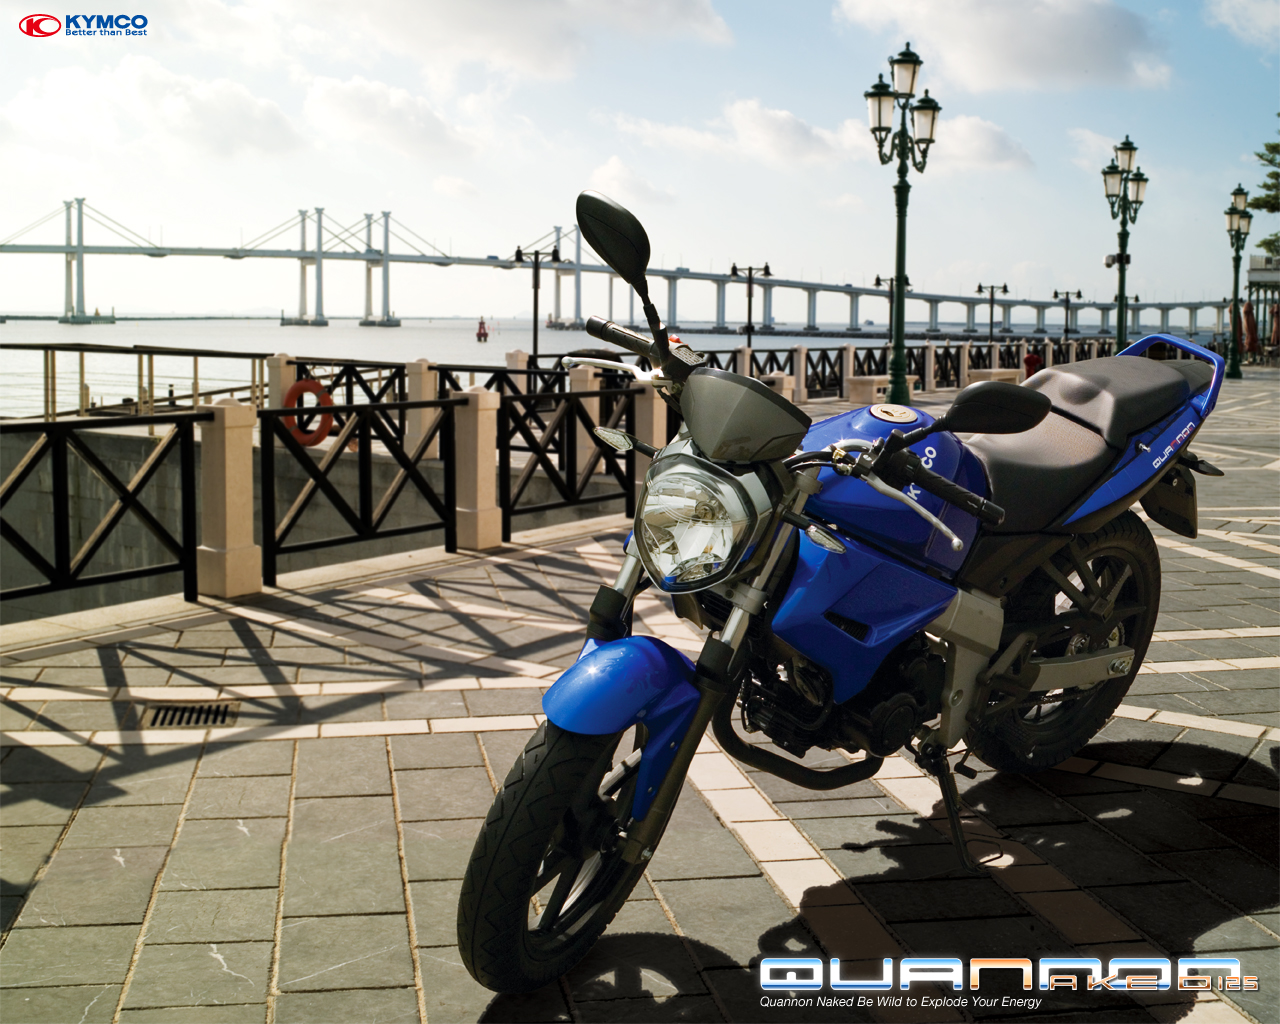 2013 Kymco Quannon Naked 125 Review - Top Speed